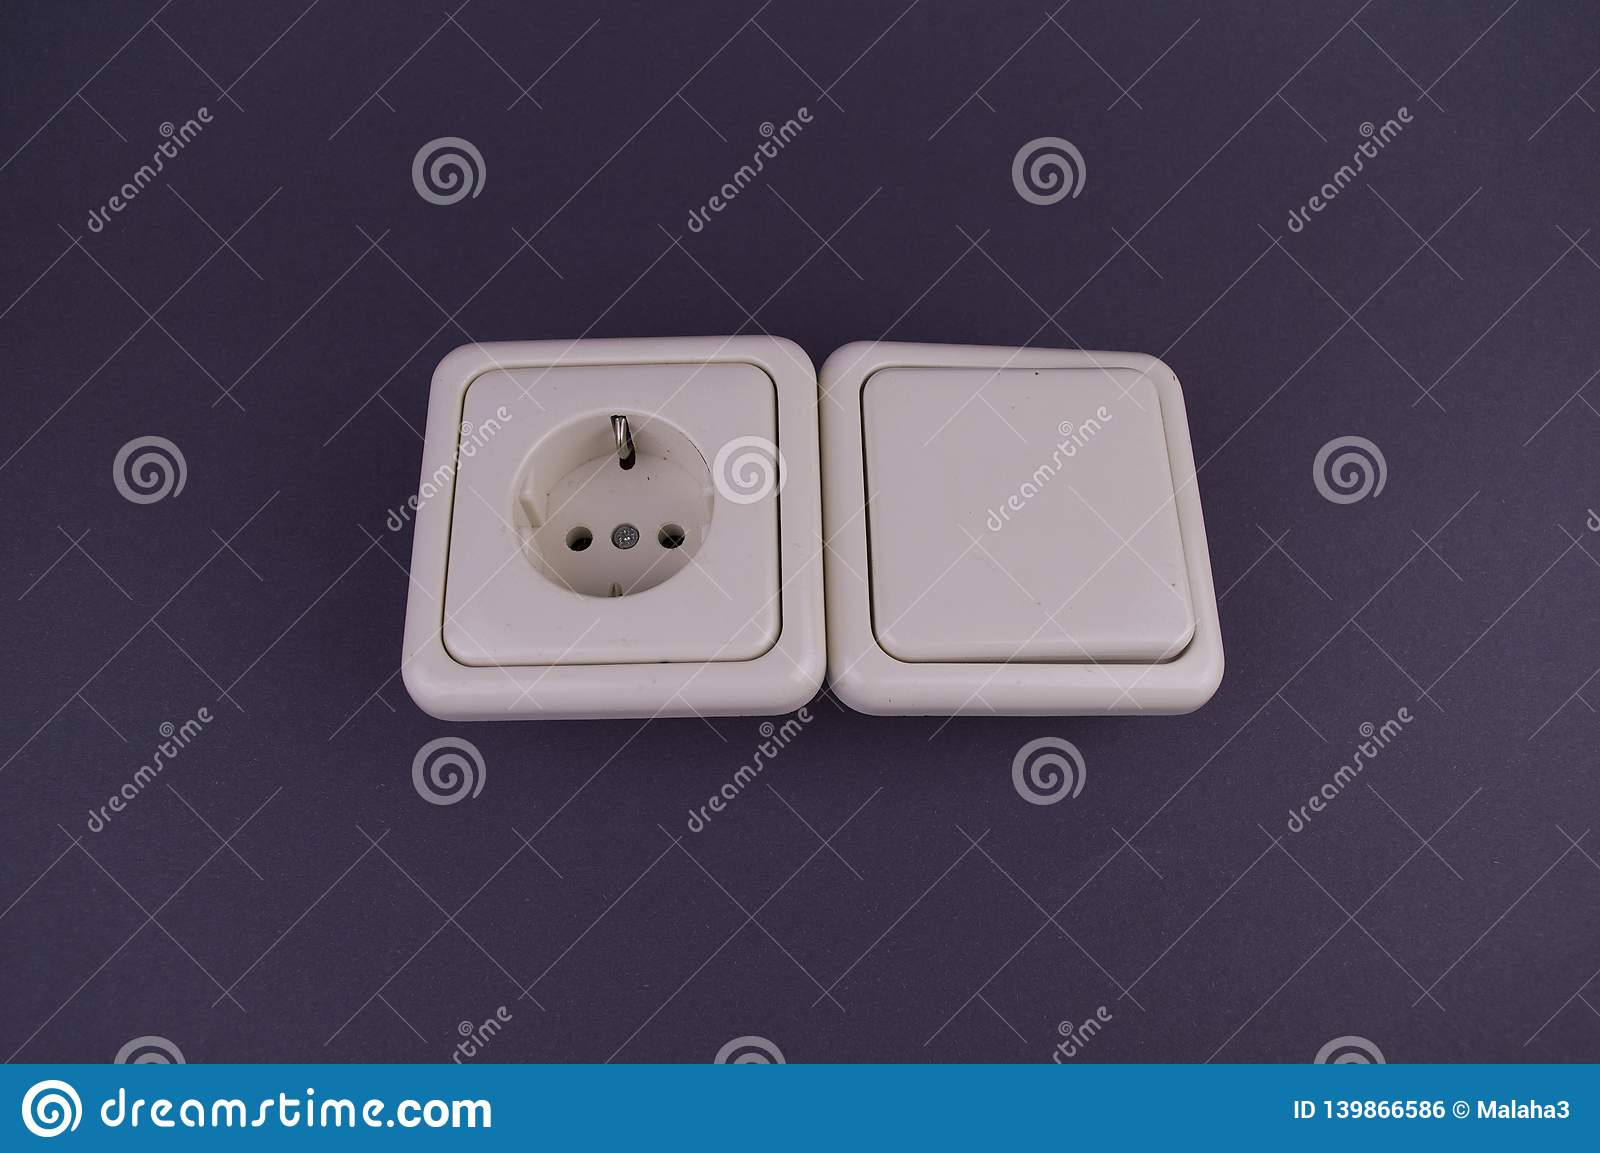 Socket, a switch on a gray background, there is a place to fill